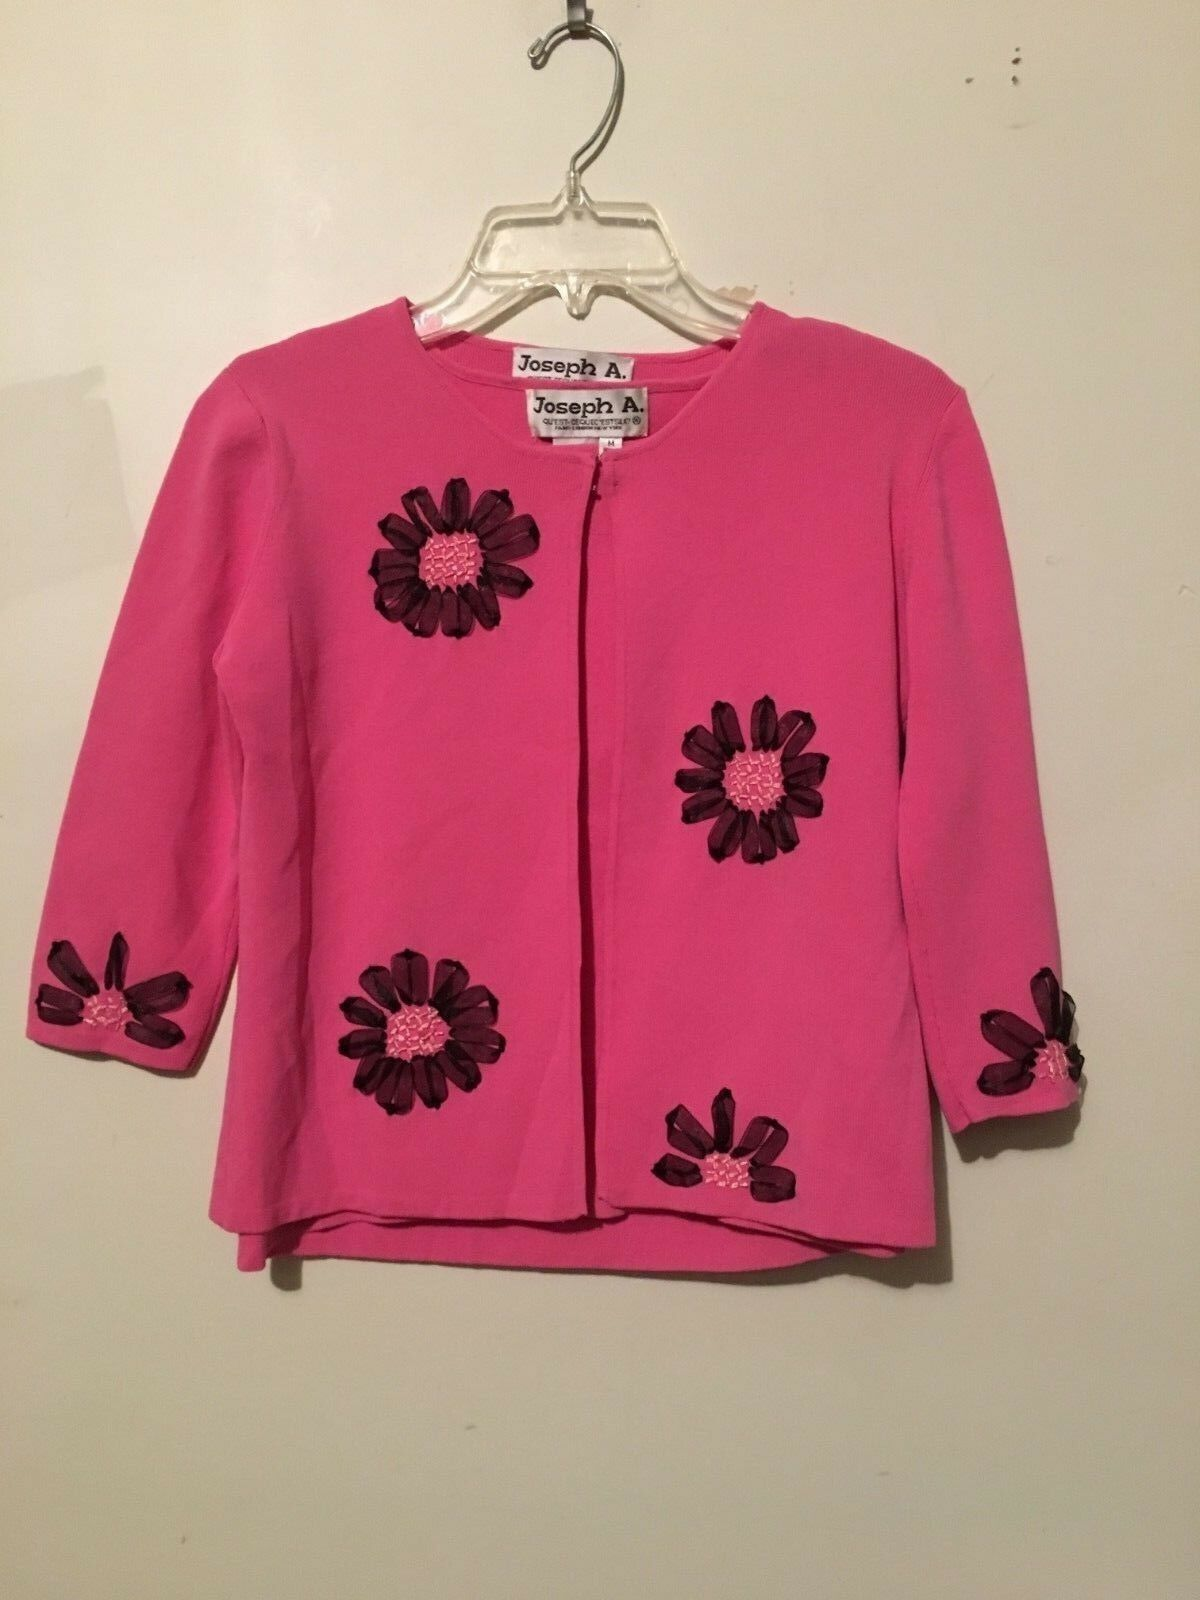 Joseph A Quest EstSilk 2 Piece Pink Floral Design Cardigan Sweater Women Size M